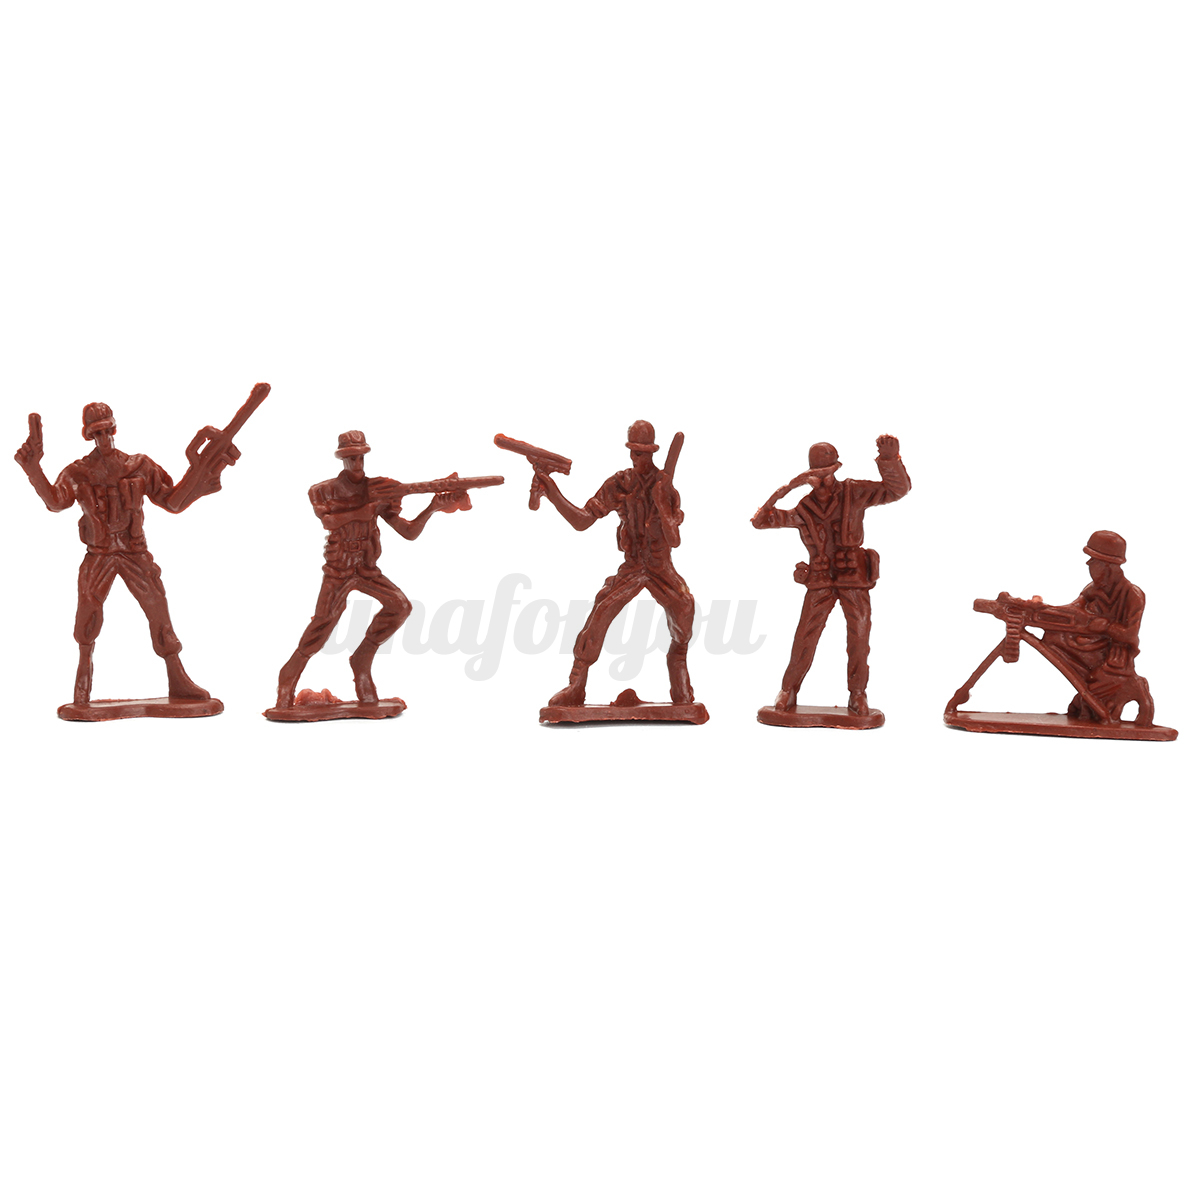 238PCS-Military-Plastic-Soldiers-Army-Men-Figures-Tanks-Accessories-Play-Set-Toy thumbnail 11